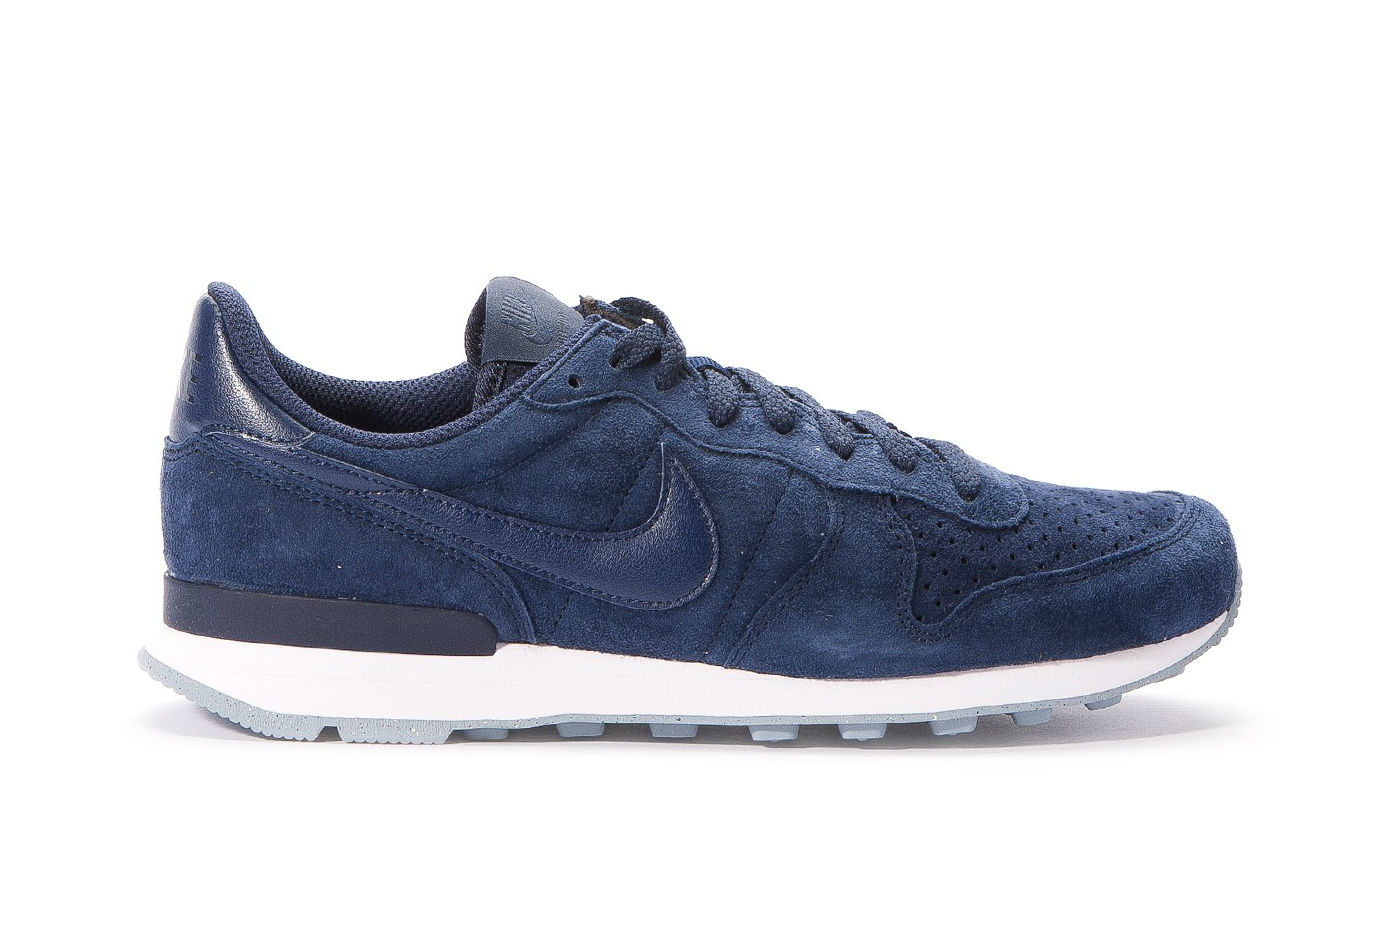 Nike Internationalist Premium Obsidian